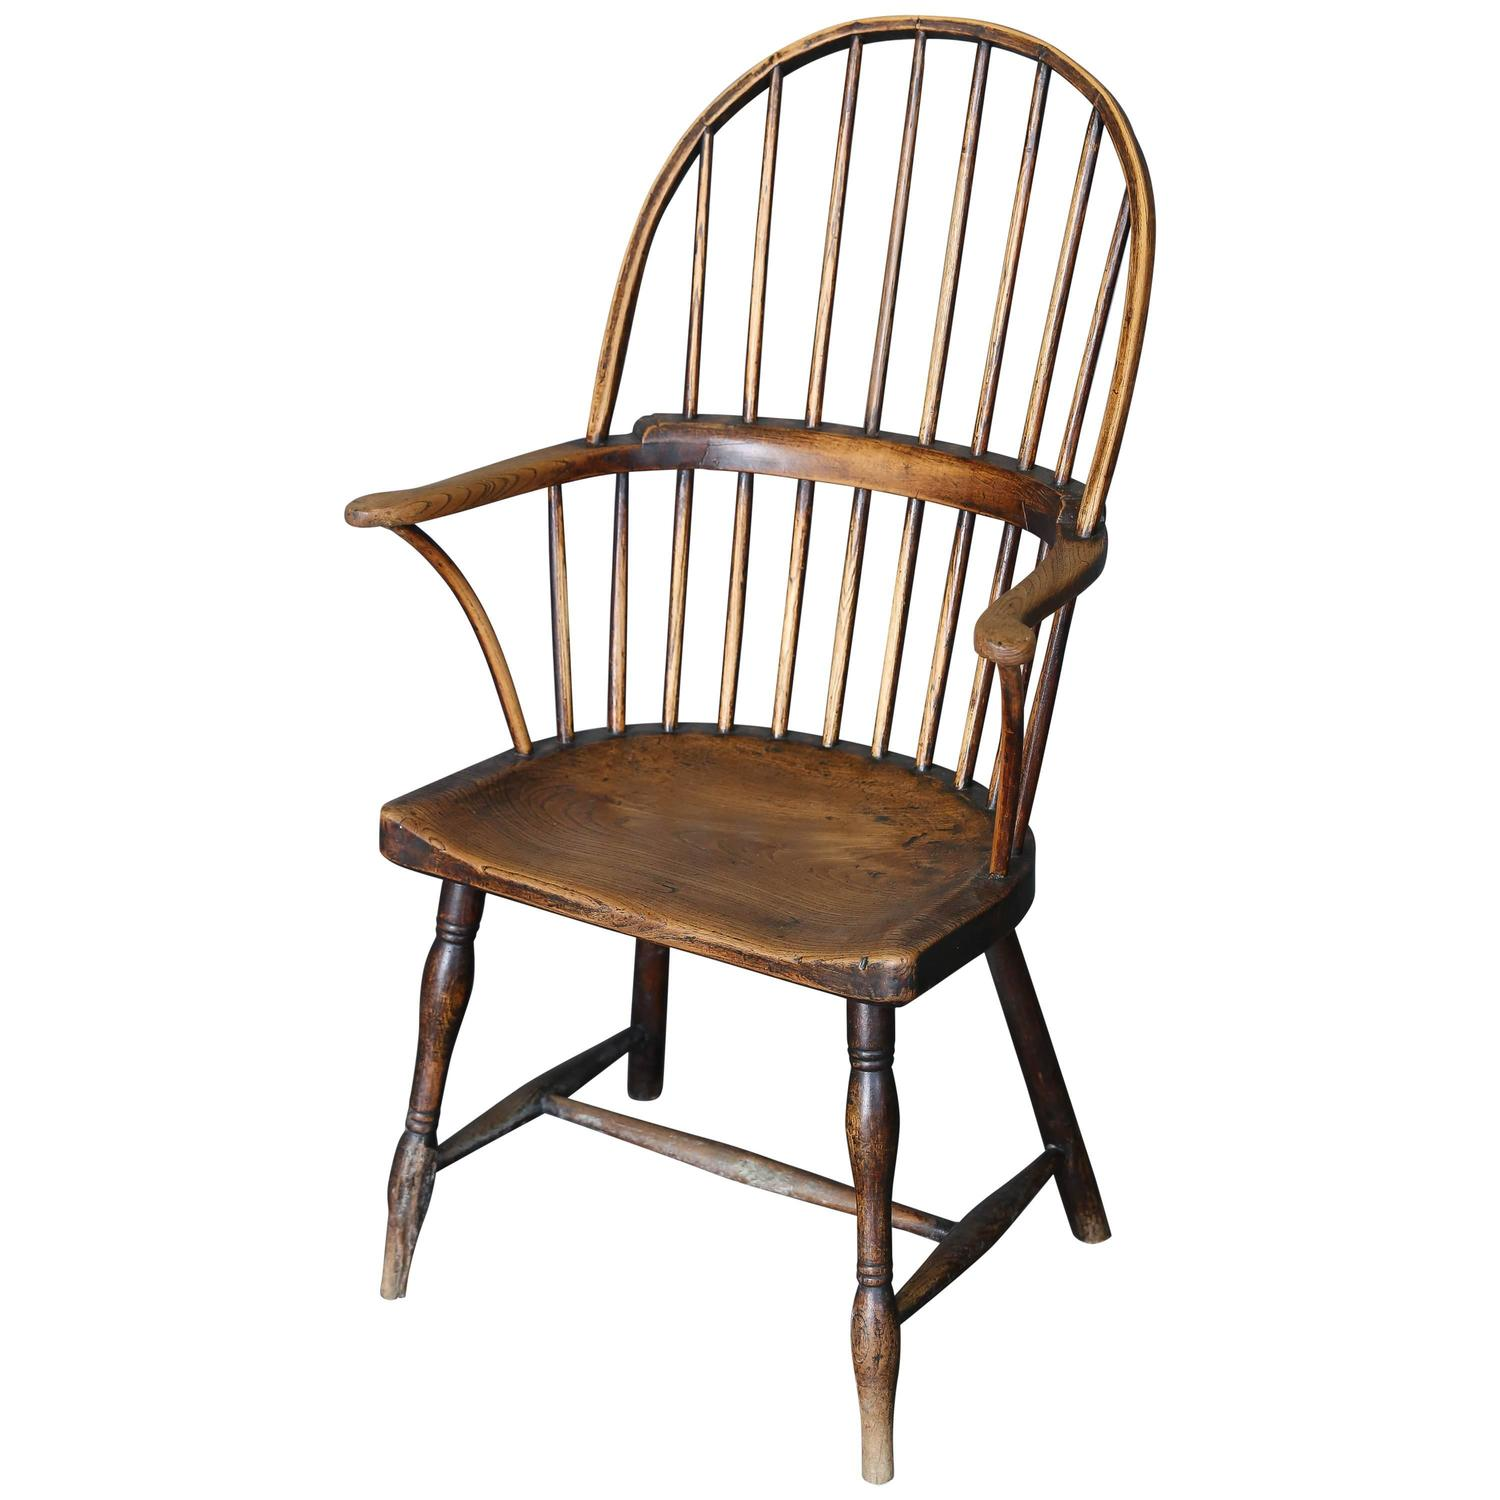 English Windsor Chairs 47 For Sale at 1stdibs